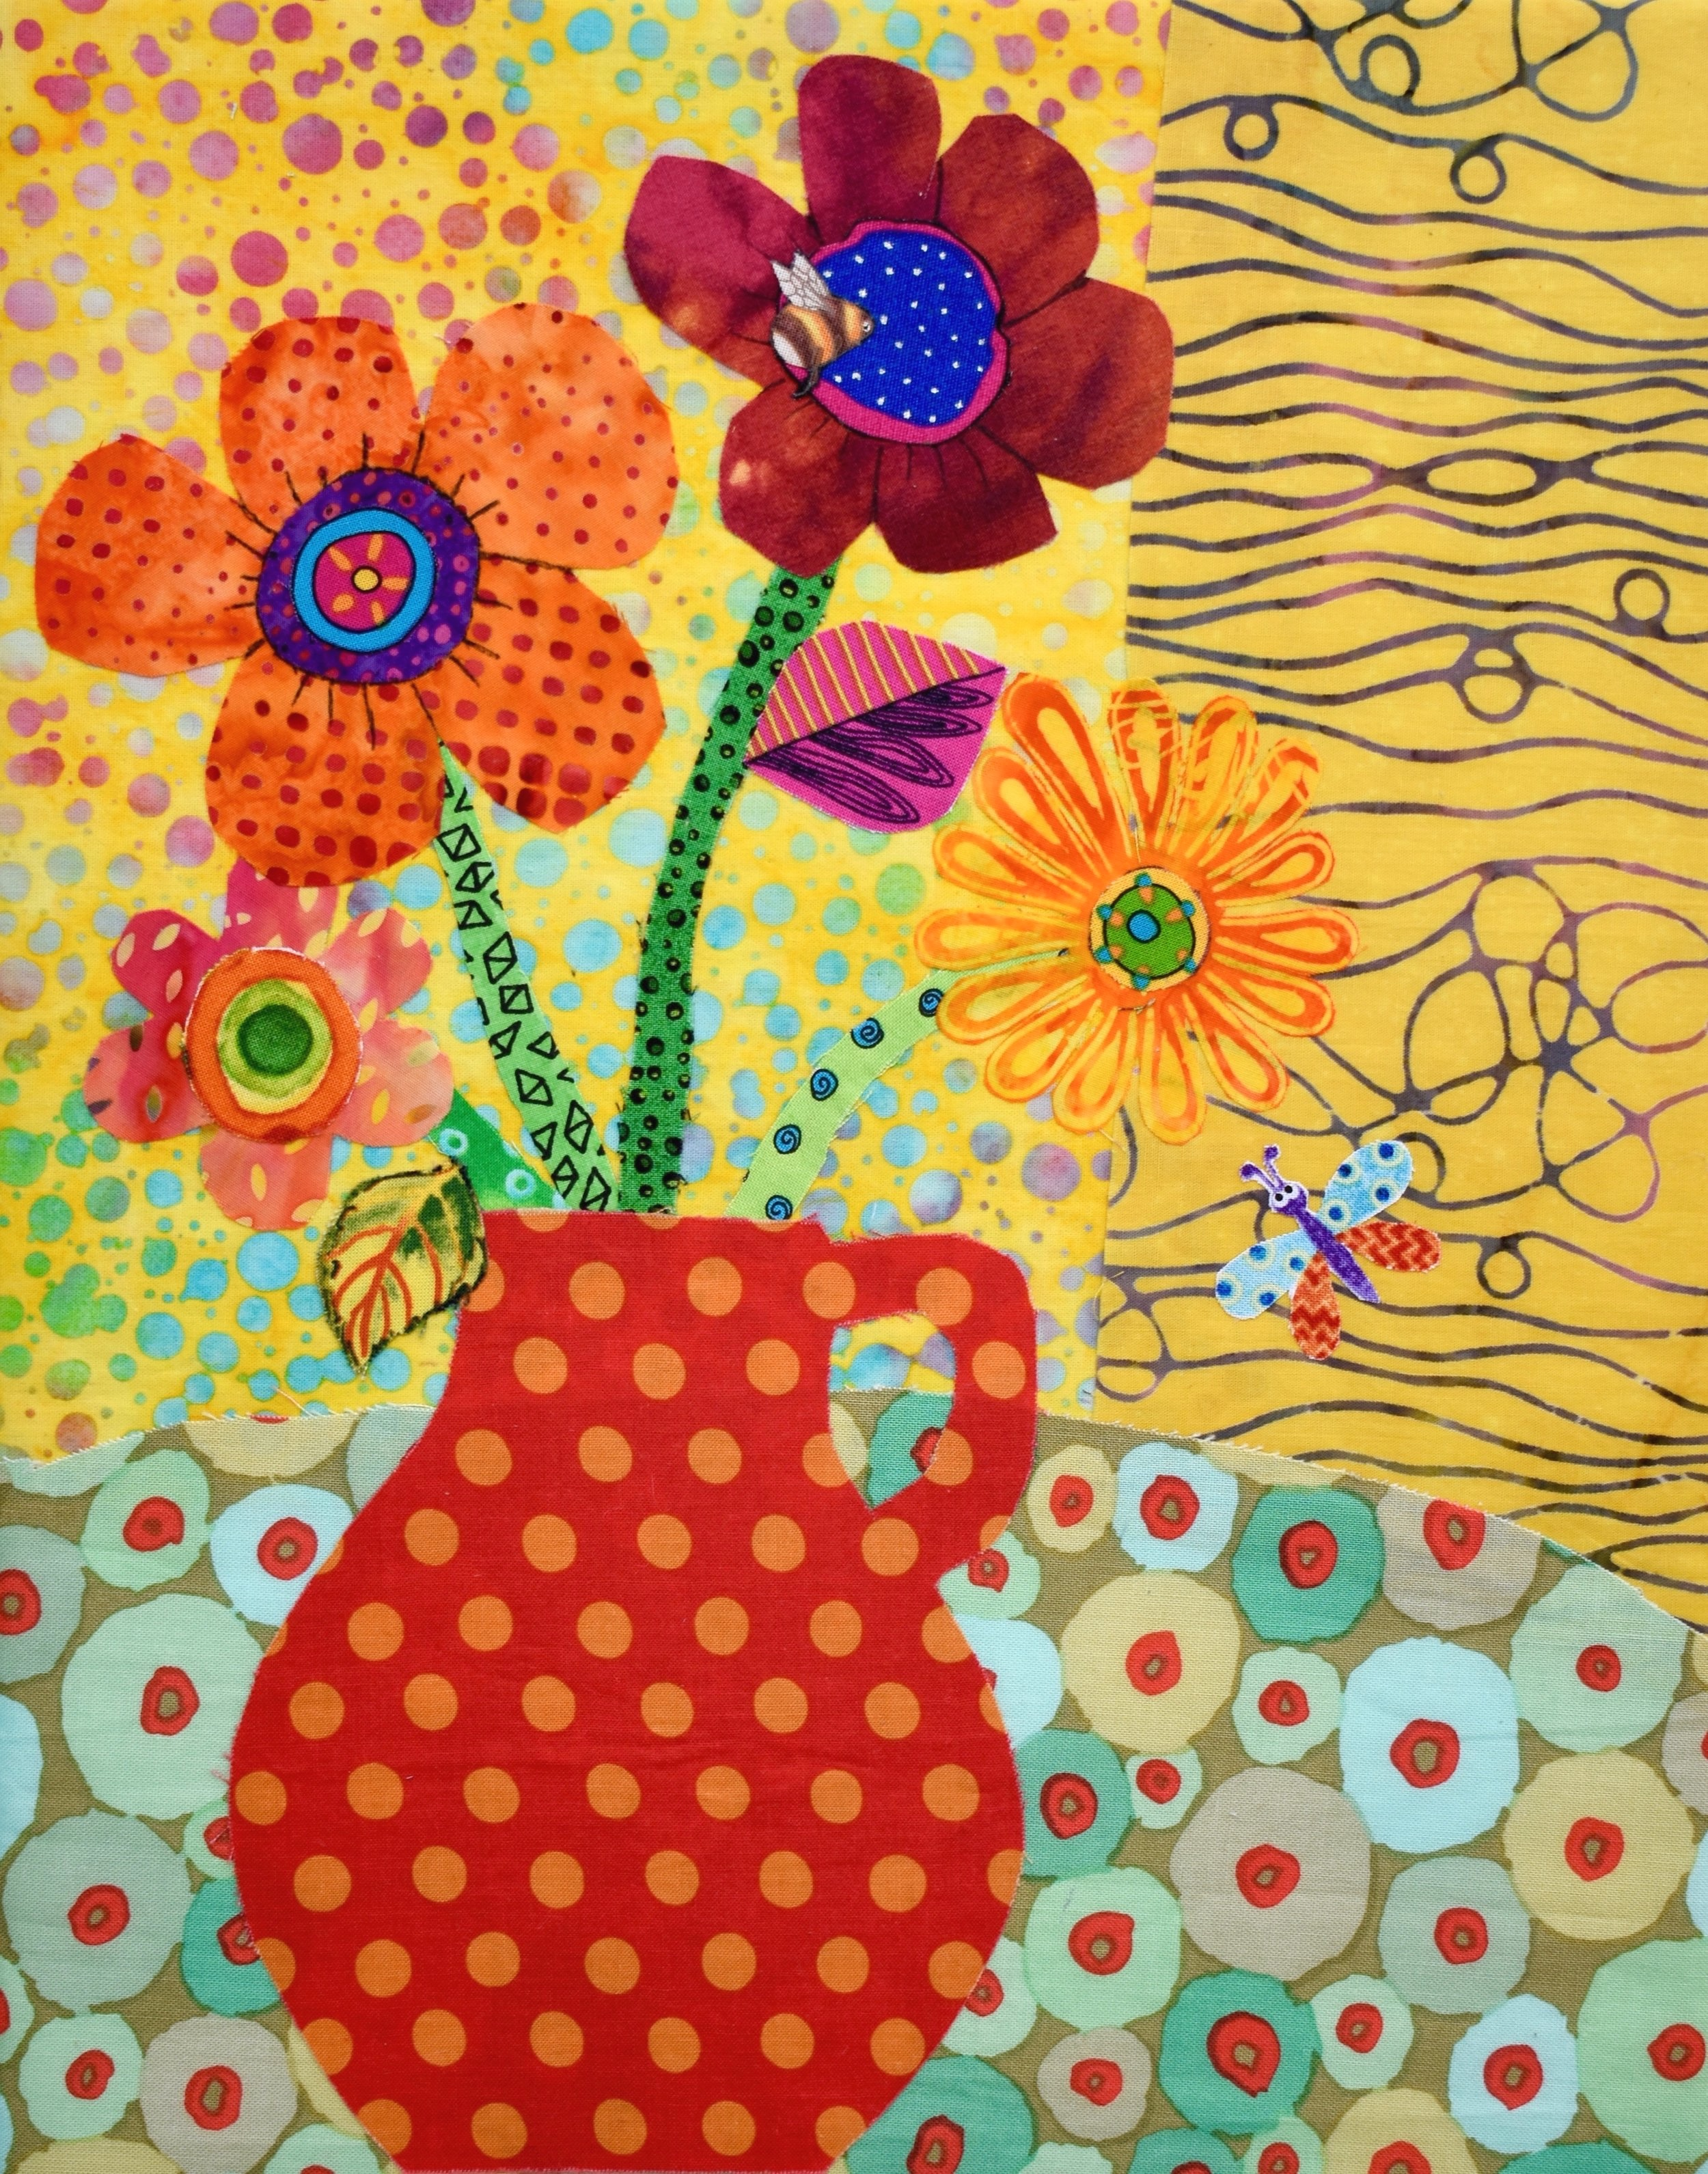 Playful Pot of Blooms - Class at the Ruth Funk Center for the Textile ArtAugust 19, 2019 1:00 - 4:00 pmSOLD OUThttps://textiles.fit.edu/events/ 150 W. University Blvd. Melbourne, Fl 32901